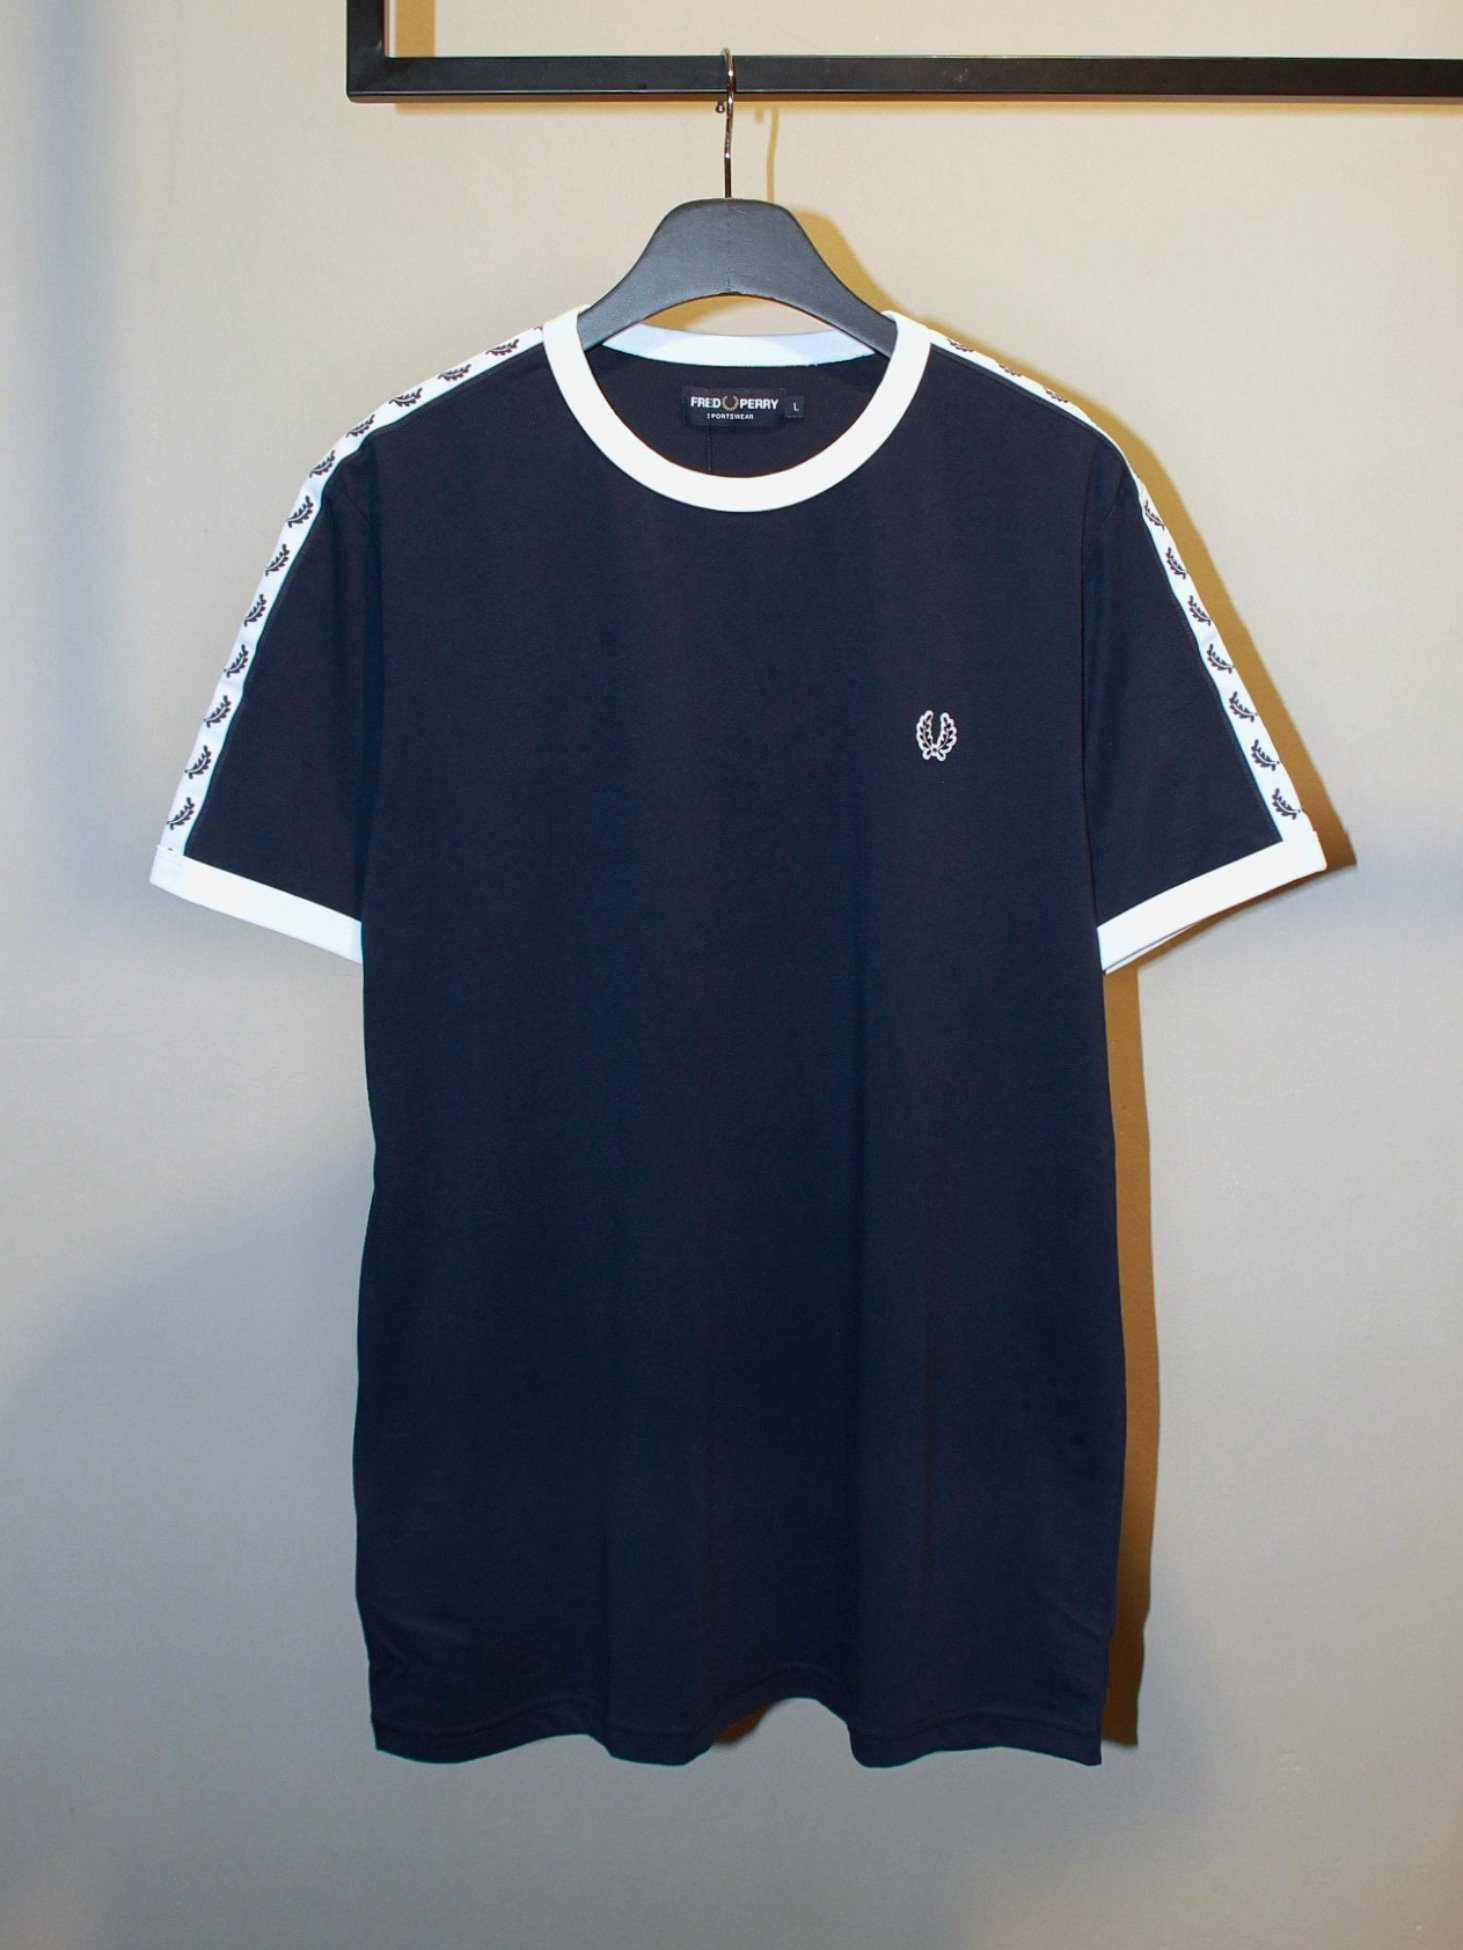 [Fred Perry] Taped Ringer T-Shirt - Carbon Blue